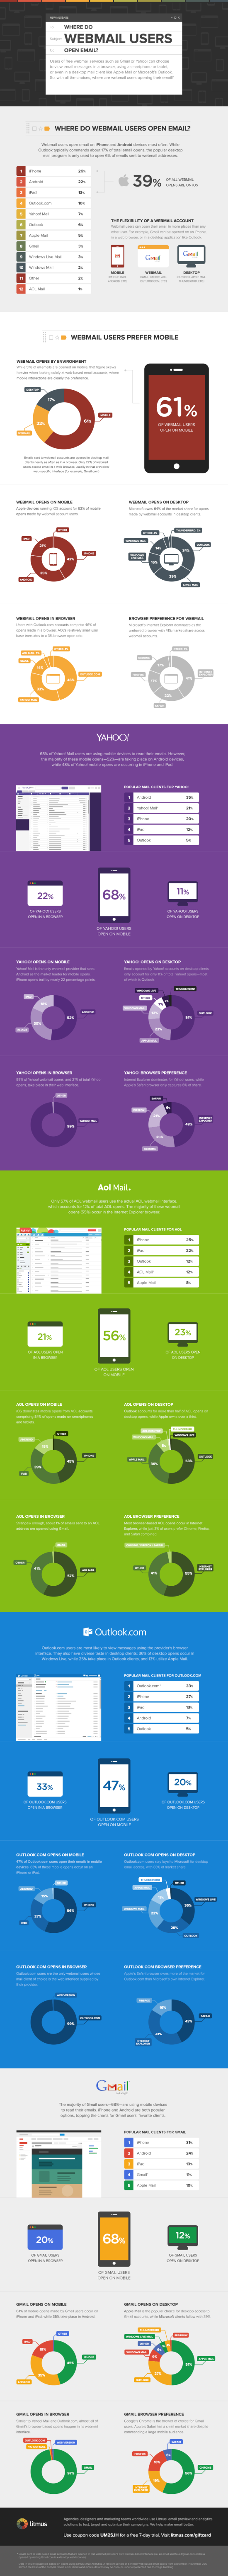 webmail-email-infographic